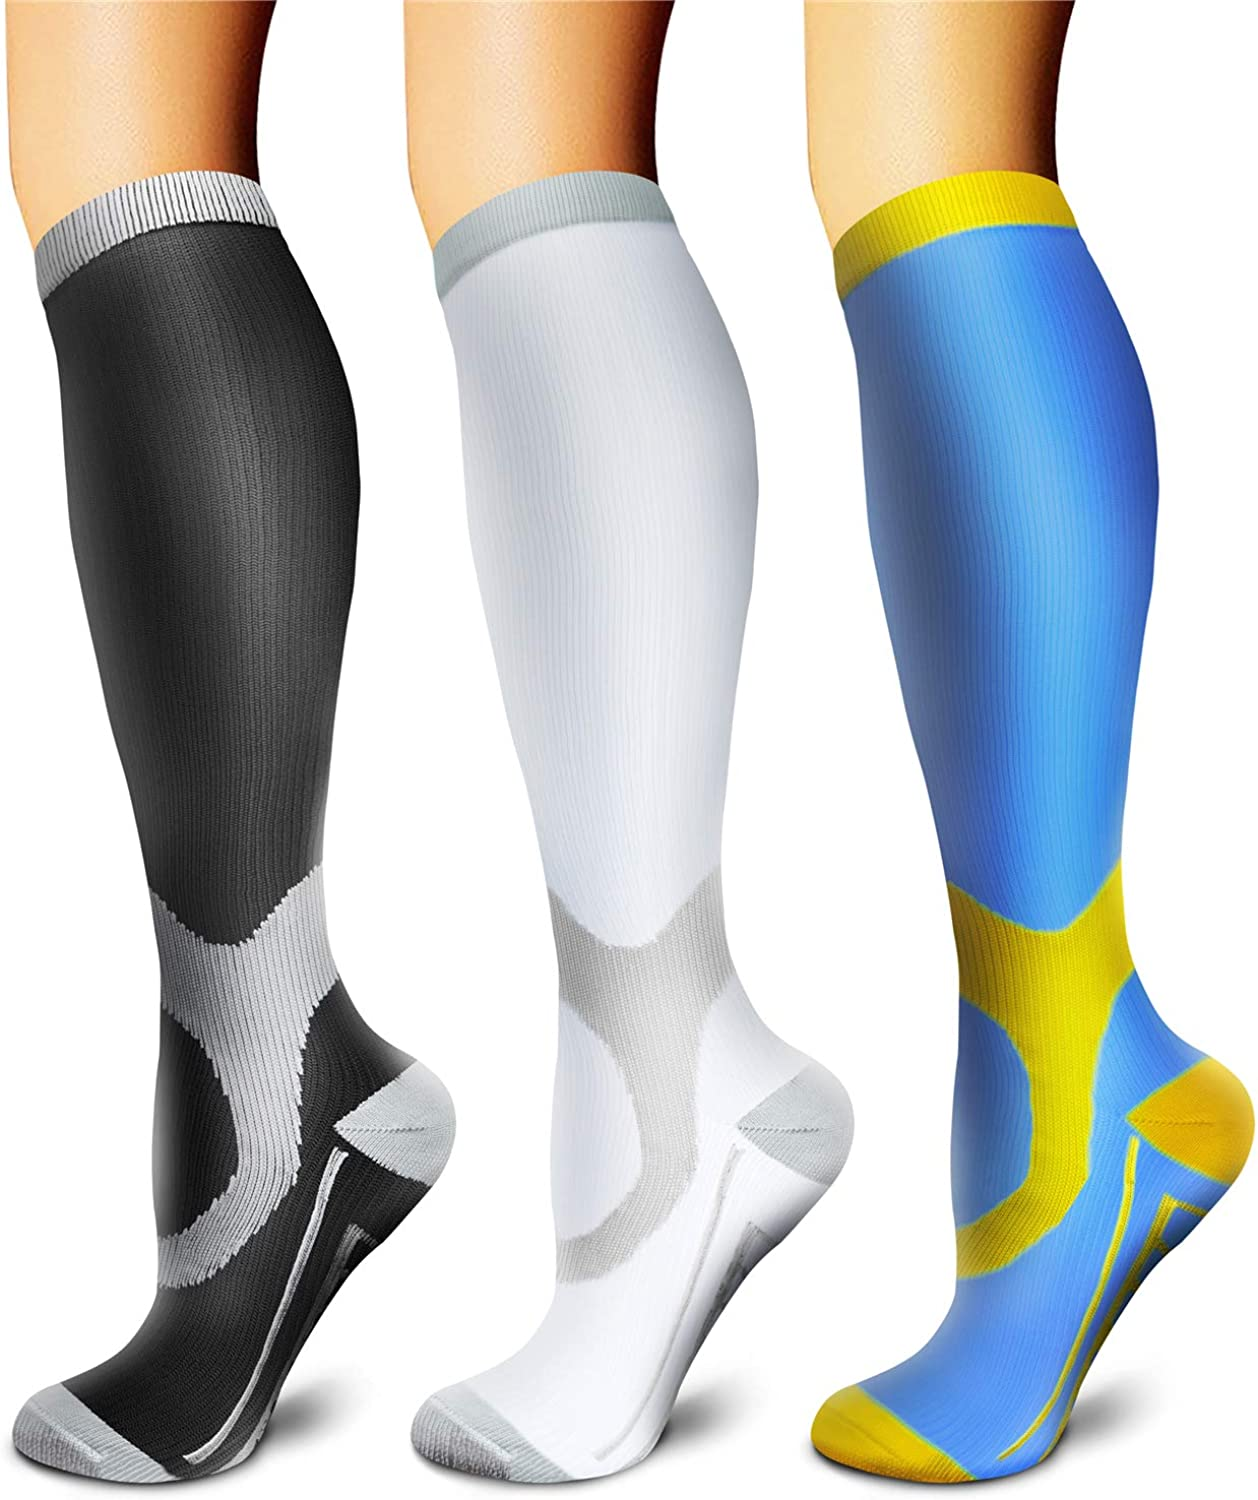 Copper Compression Socks (3 Pairs) 15-20 mmHg Circulation is Best Athletic & Daily for Men & Women, Running, Climbing: Clothing